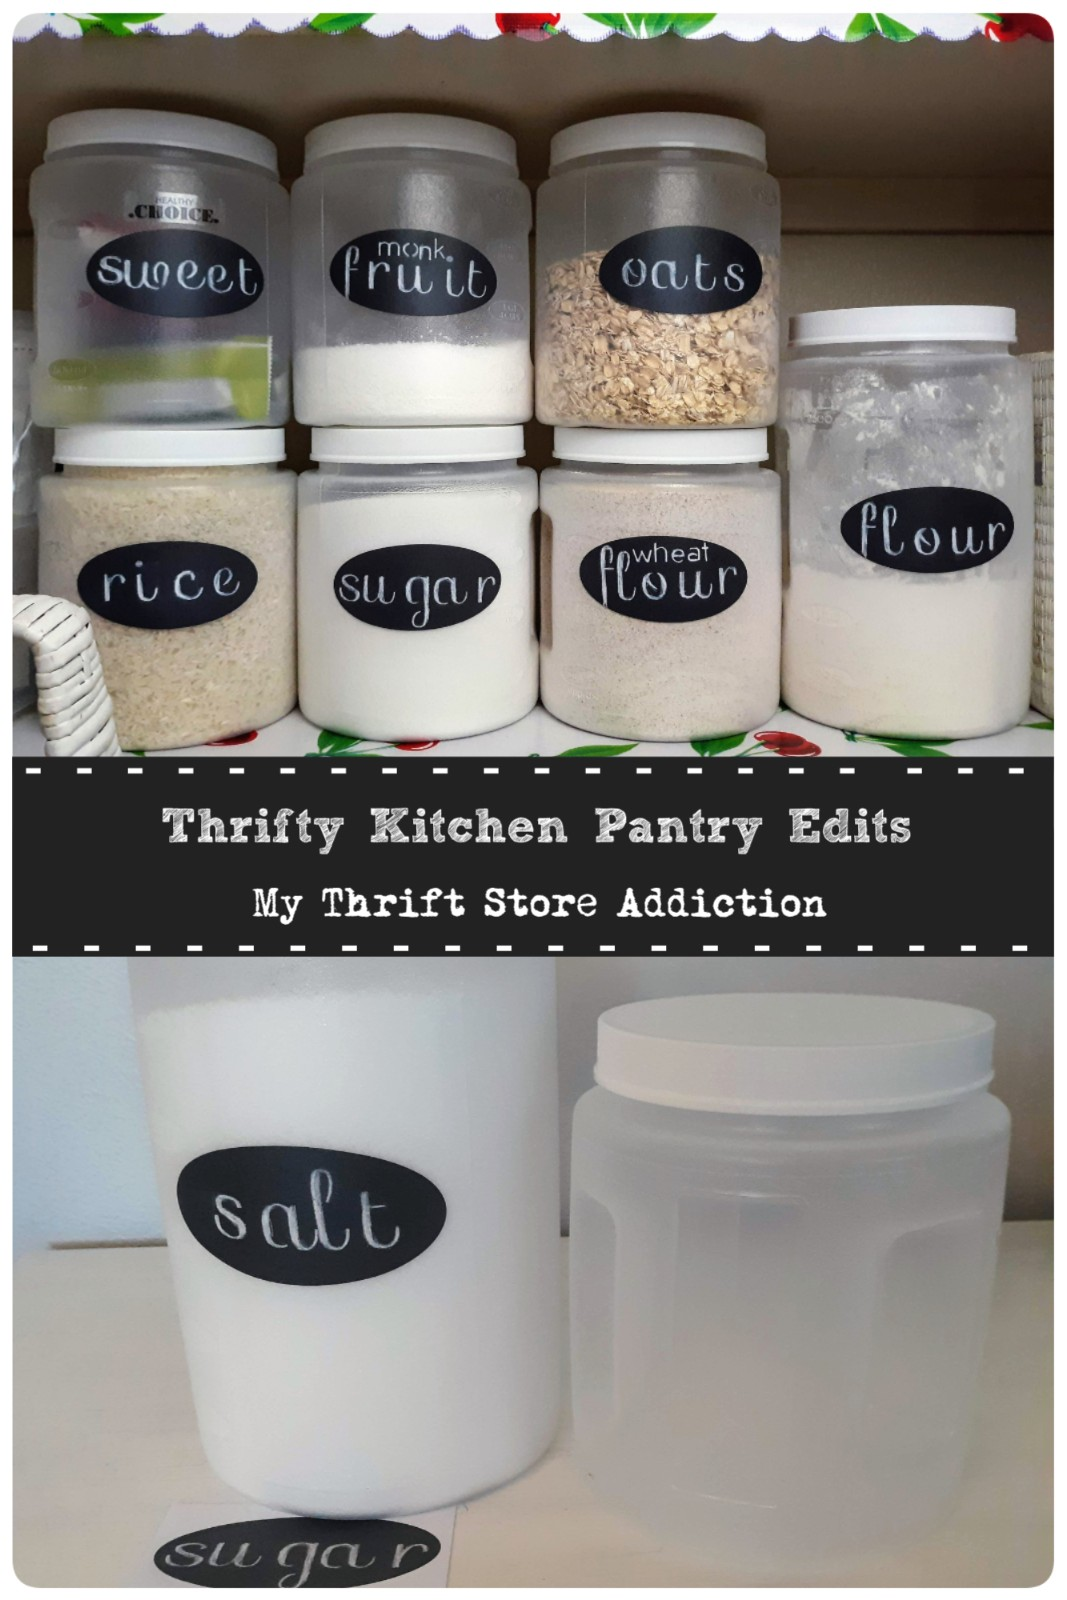 Thrifty home edits